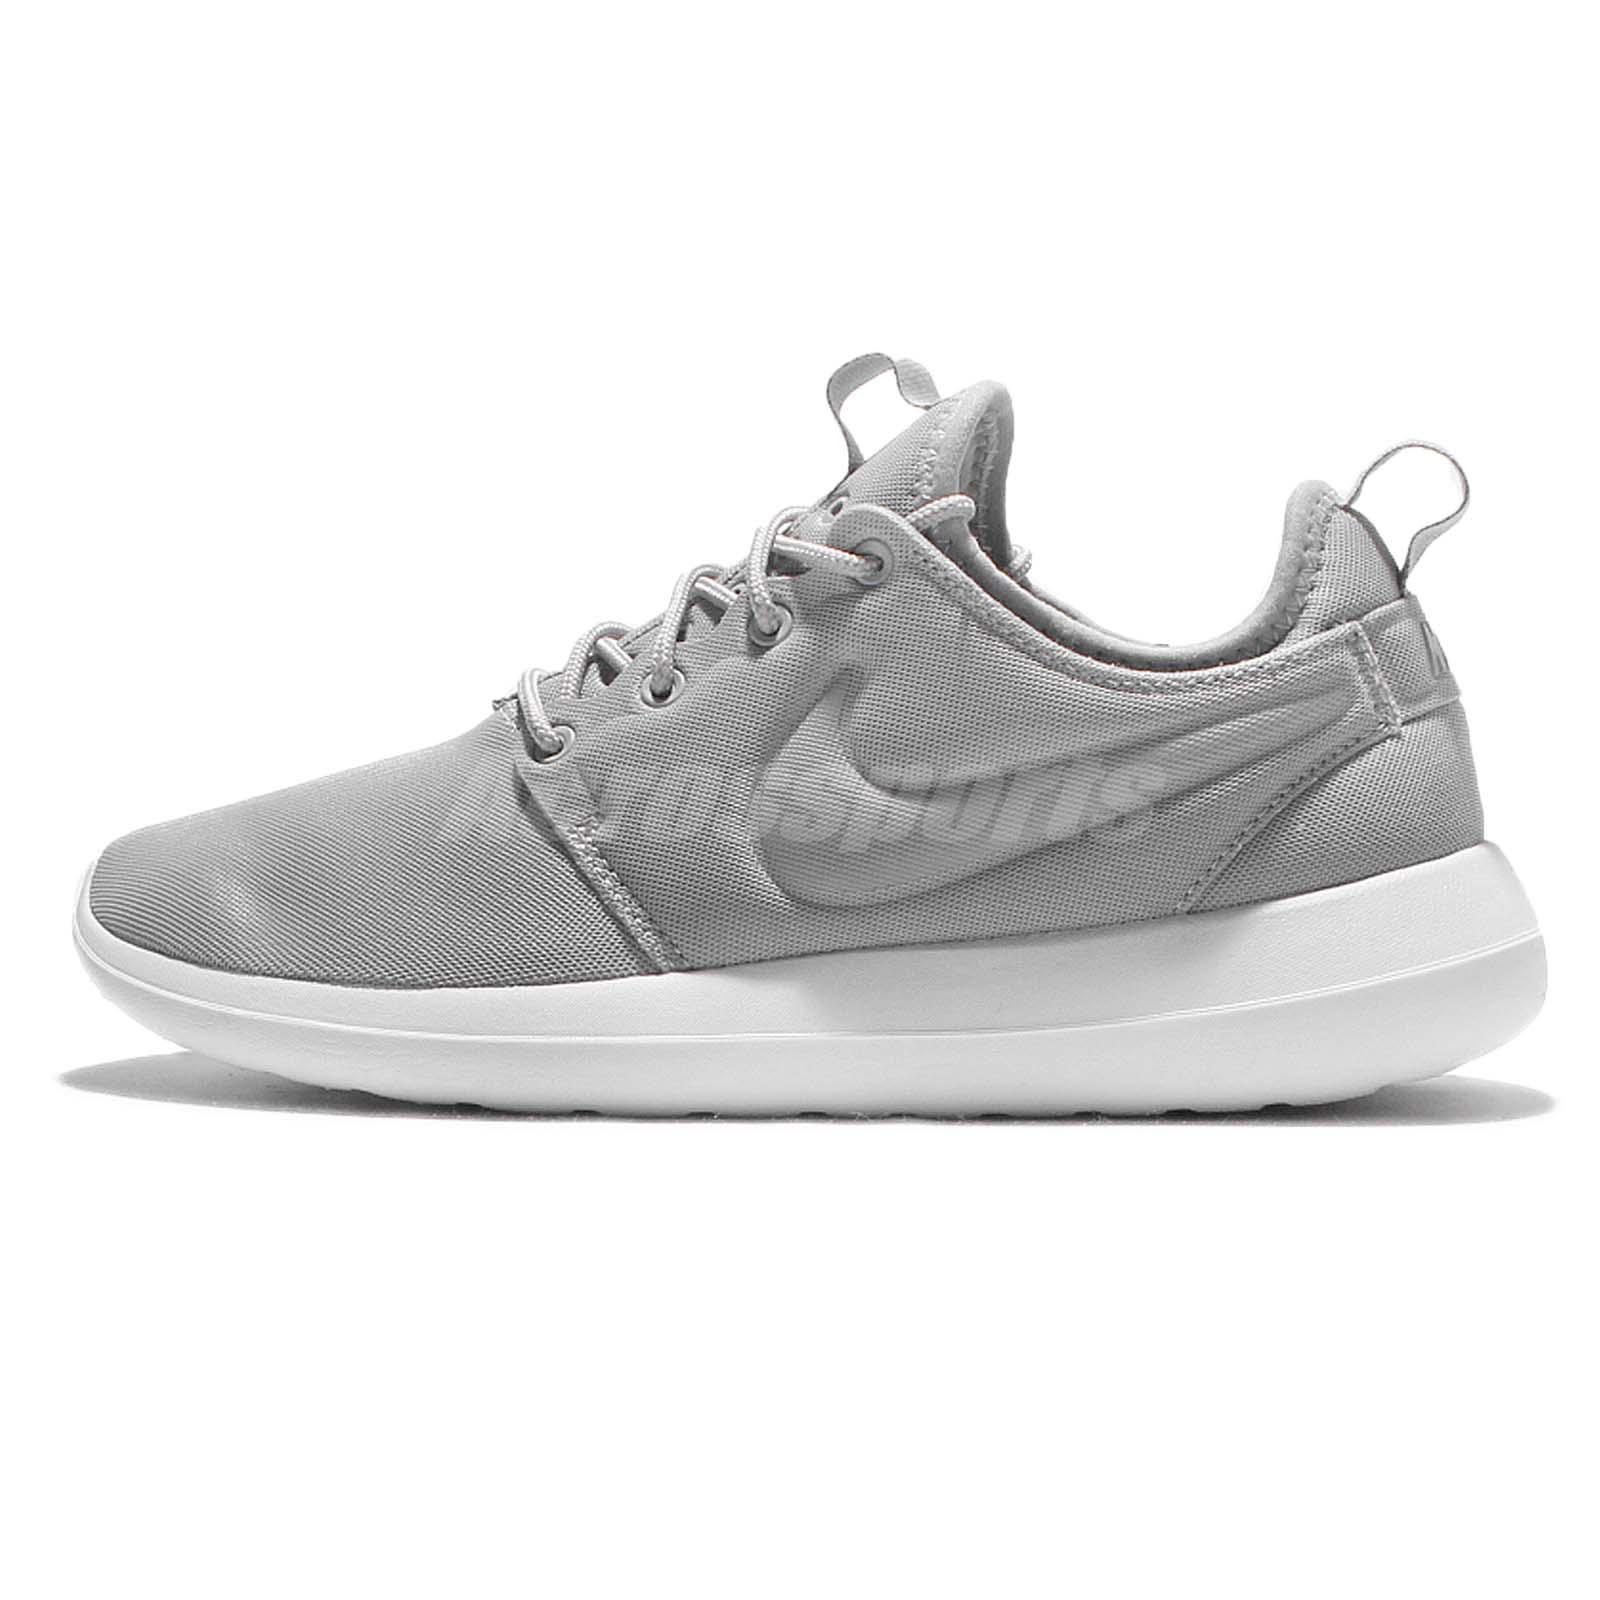 9cccef825d60a1 spain nike roshe run blumänner kinder rot 5bccb 8ab59  coupon code wmns nike  roshe two 2 rosherun wolf grey women running shoes sneakers 844931 001